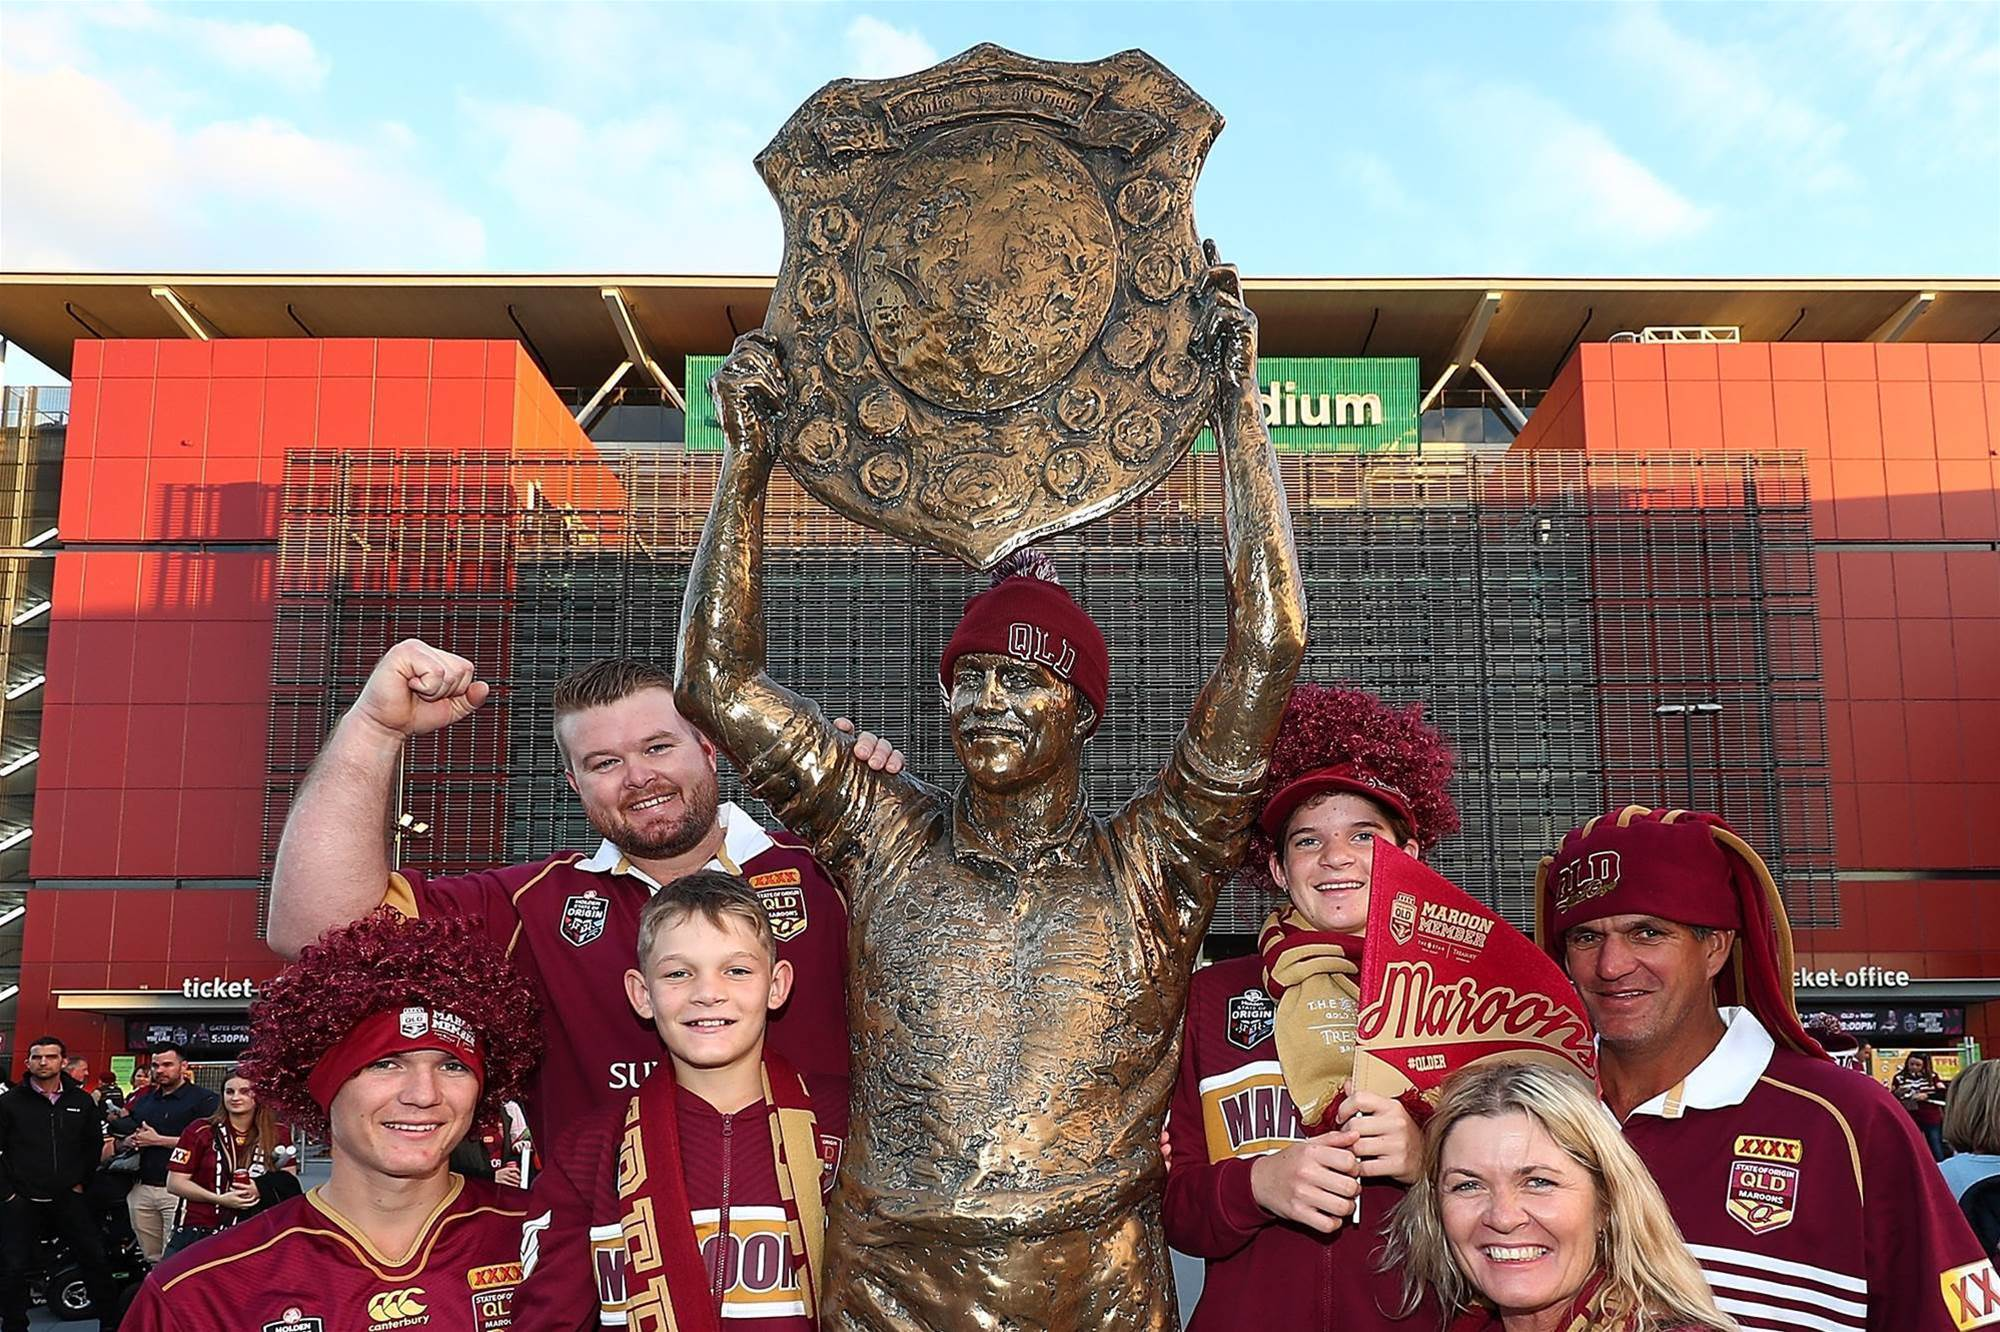 Qld misses out on NRL Grand Final